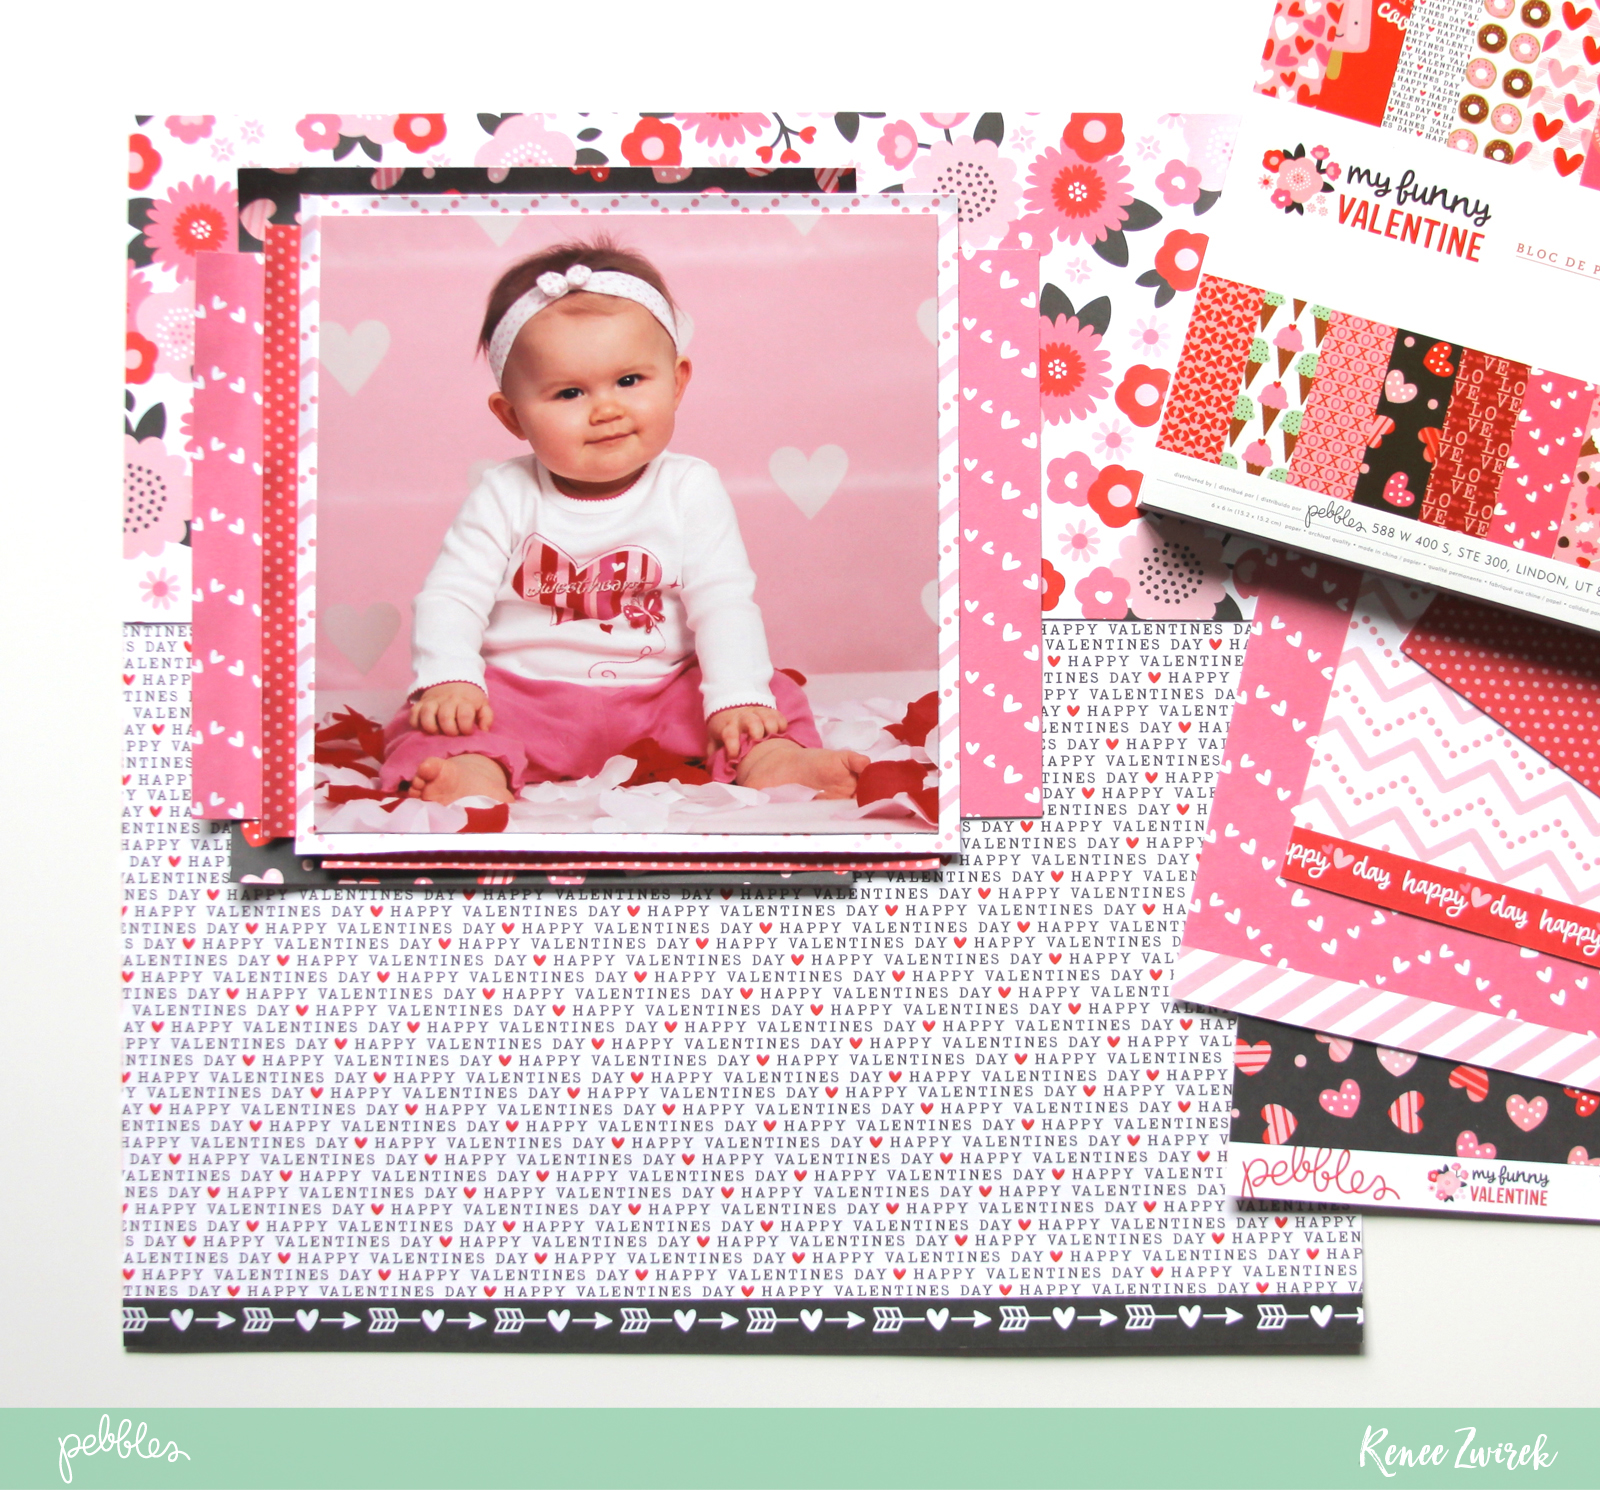 Scrapbook those special Valentine's Day photos with this I Love You layout by @reneezwirek using the #MyFunnyValentine collection by @pebblesinc